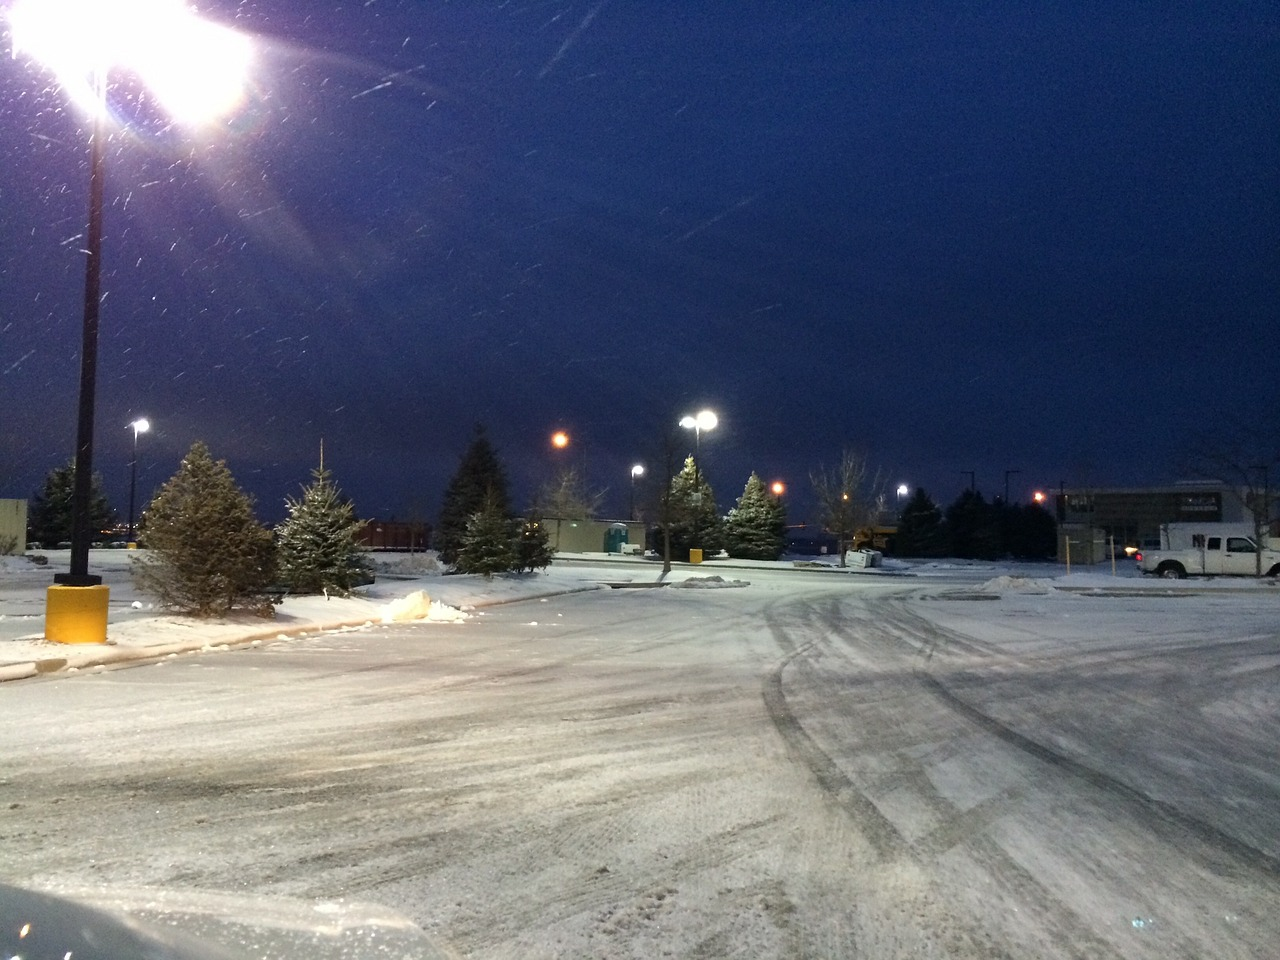 snow,snowy,night,colorado,street,winter,cold,frost,snowfall,weather,outdoor,seasonal,snowstorm,frozen,free pictures, free photos, free images, royalty free, free illustrations, public domain